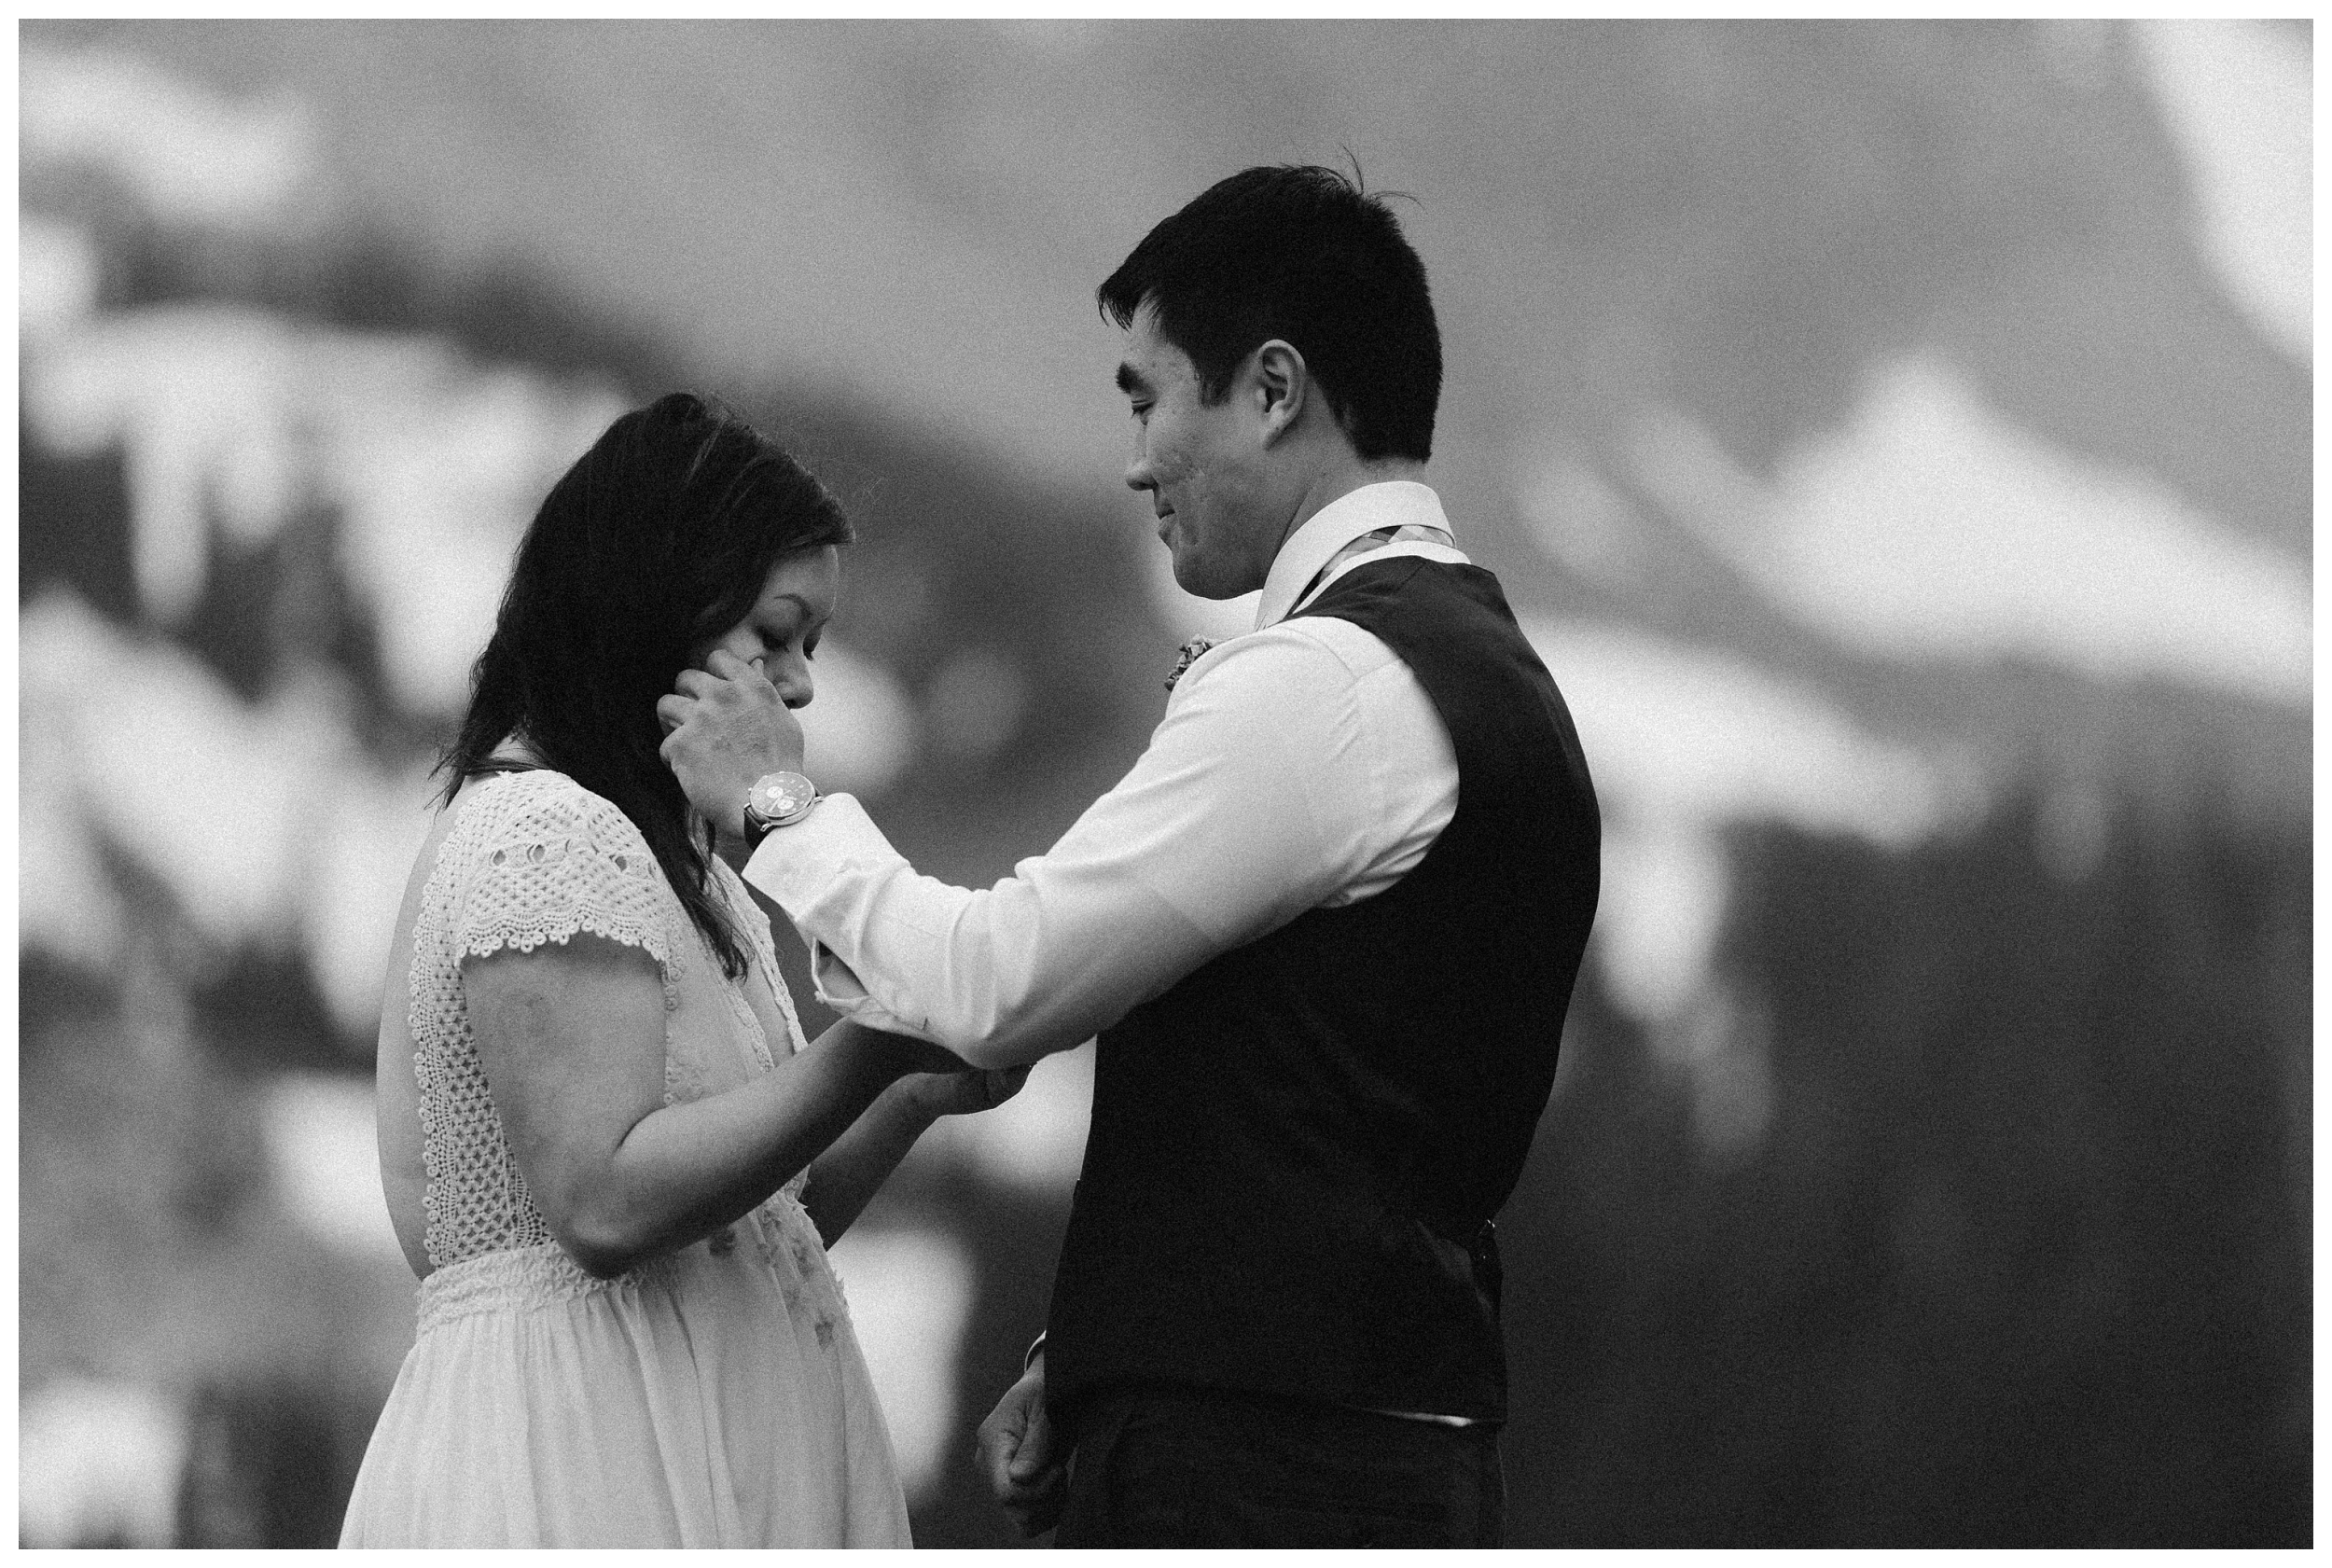 Jinson wipes a tear off the face of his bride as they exchange vows on the shores of high alpine lake Gem Lake outside Estes Park Colorado. Photo by Maddie Mae Photo, Adventure Instead.